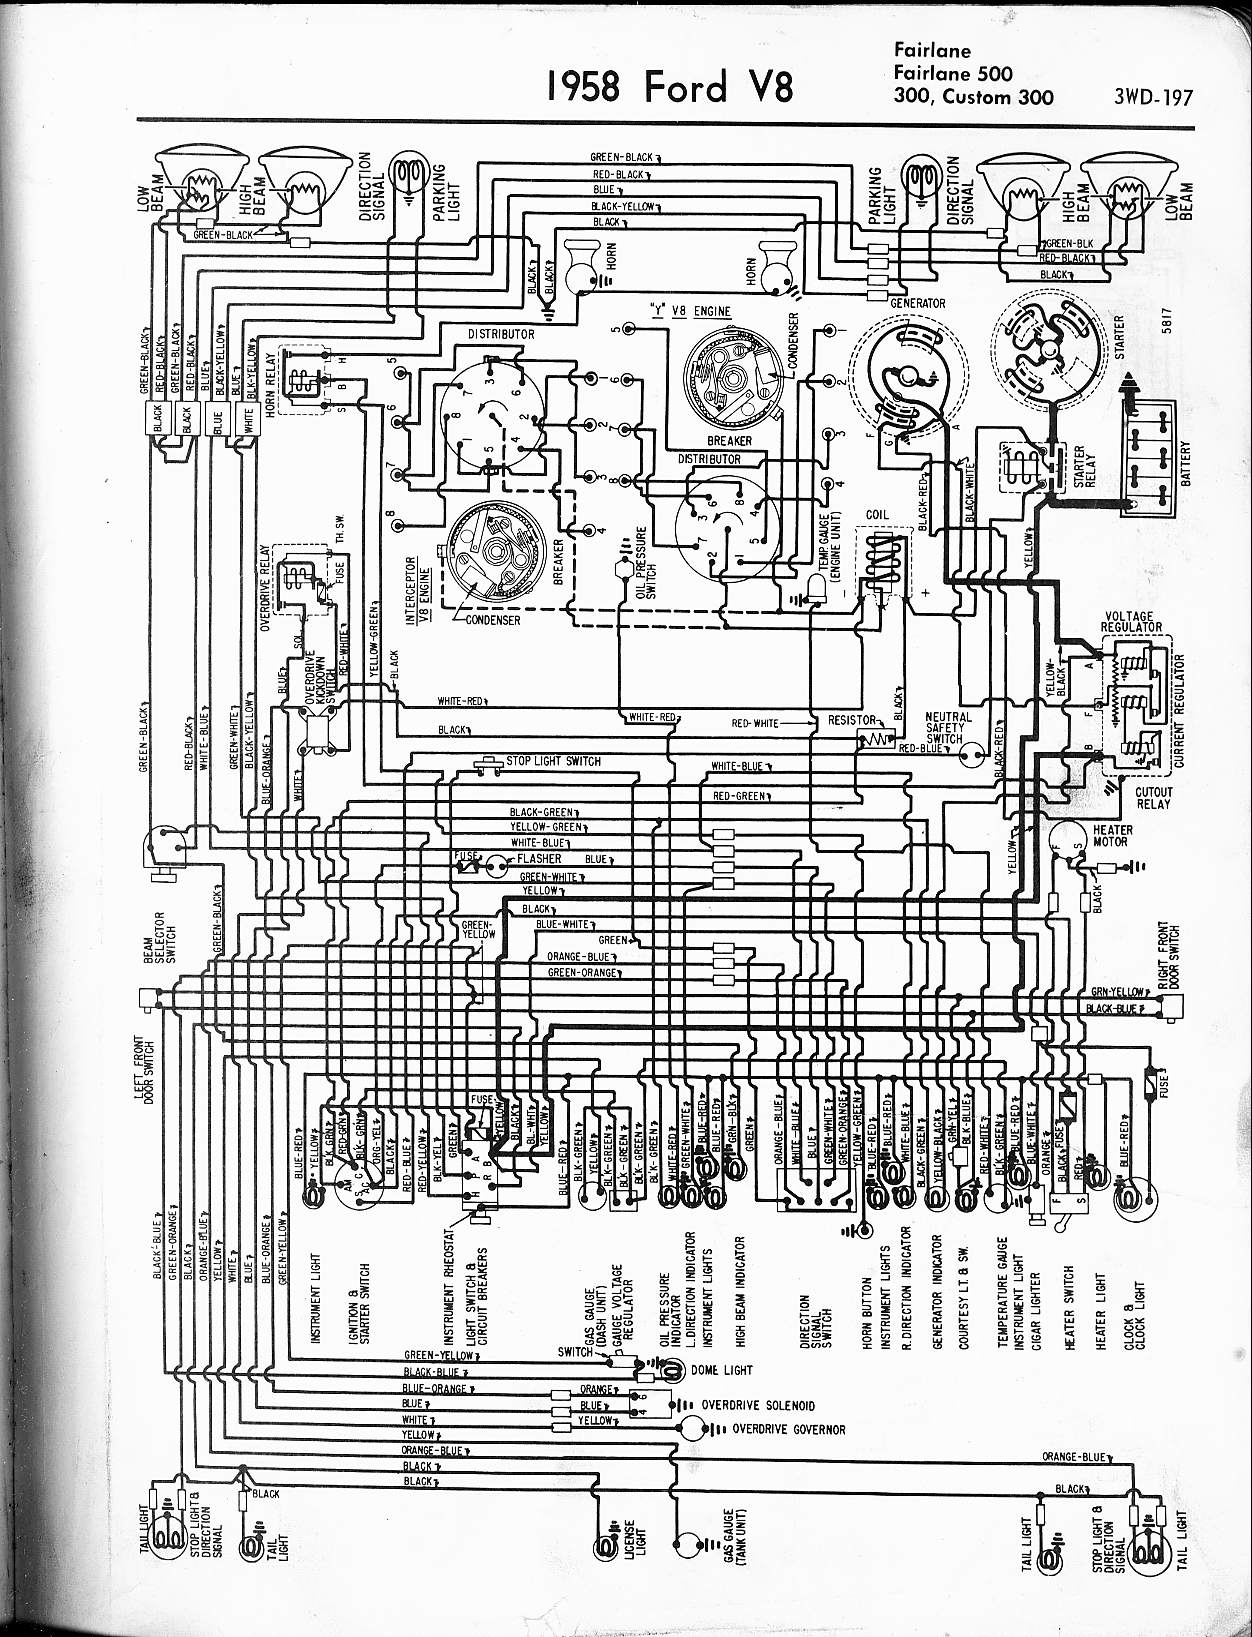 hight resolution of 1958 ford ranchero wiring diagram wiring diagram expert 1958 ford ranchero wiring diagram